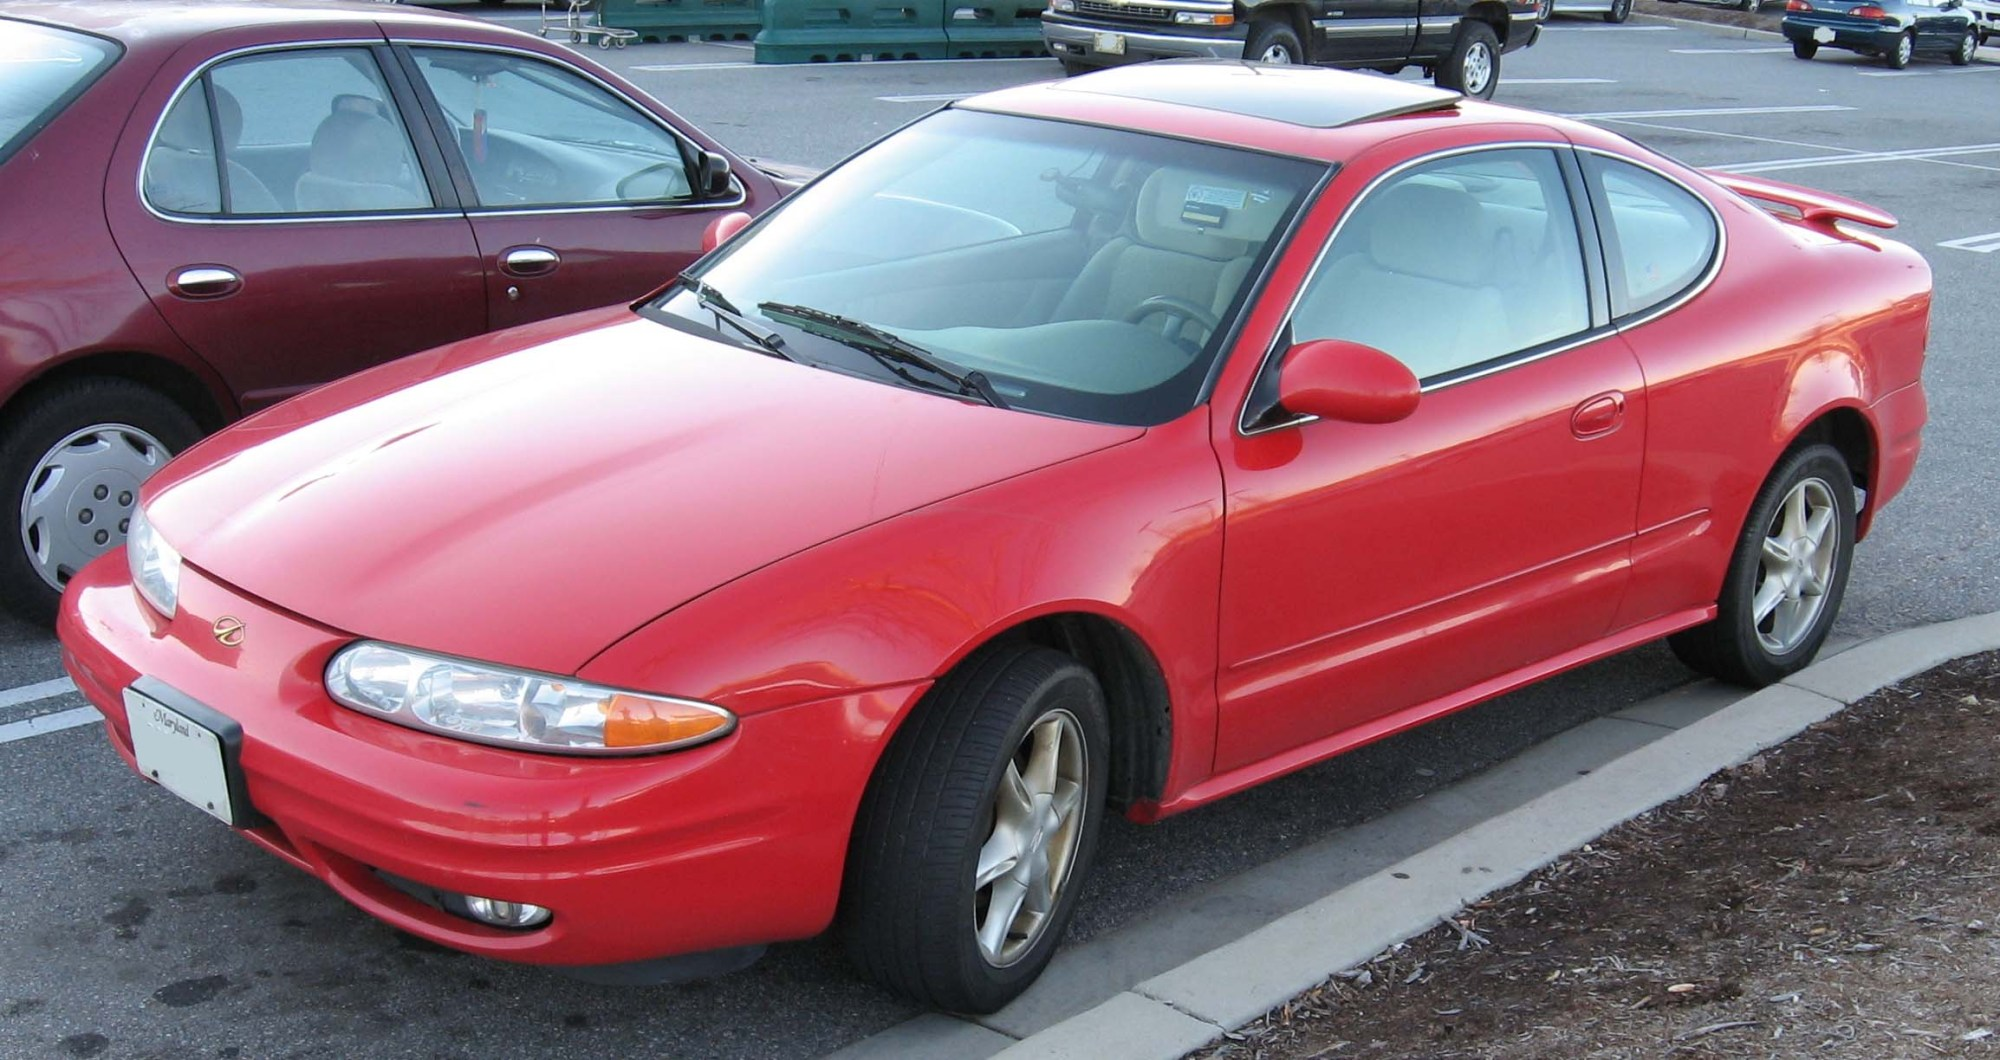 hight resolution of  2004 oldsmobile alero gx coupe photo 3